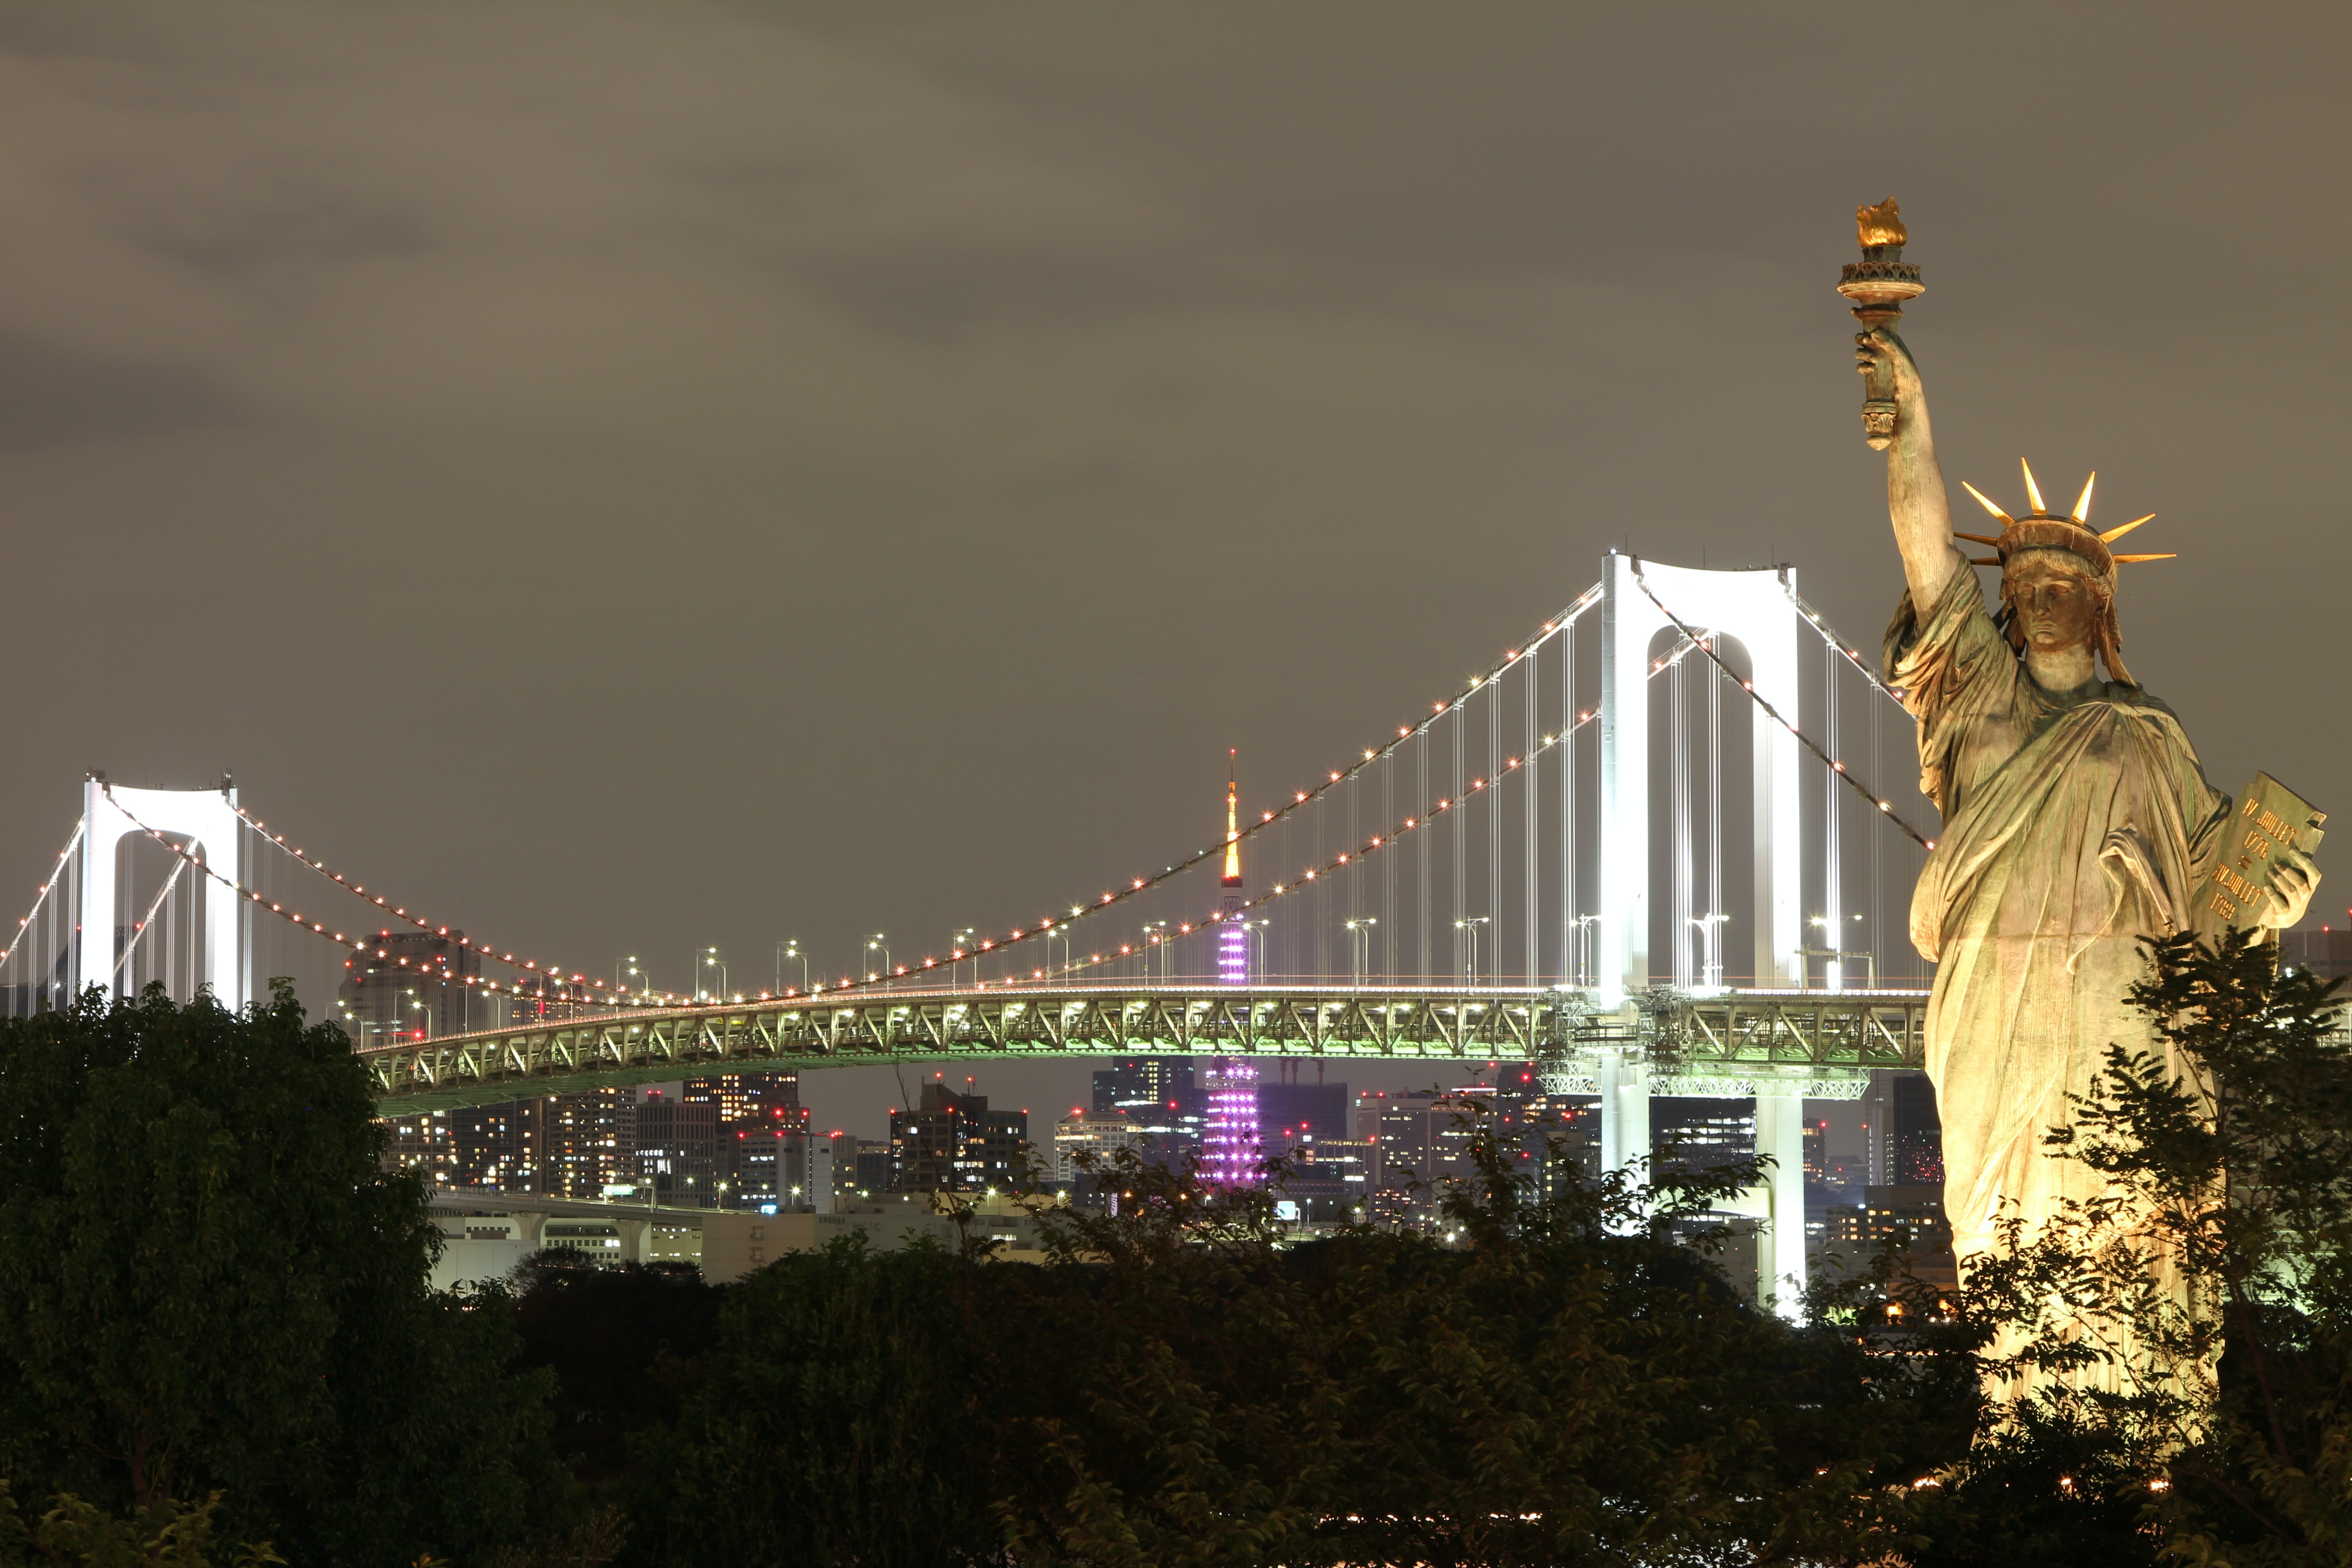 The Statue of Liberty stands in front of a lit up bridge at night in New York City